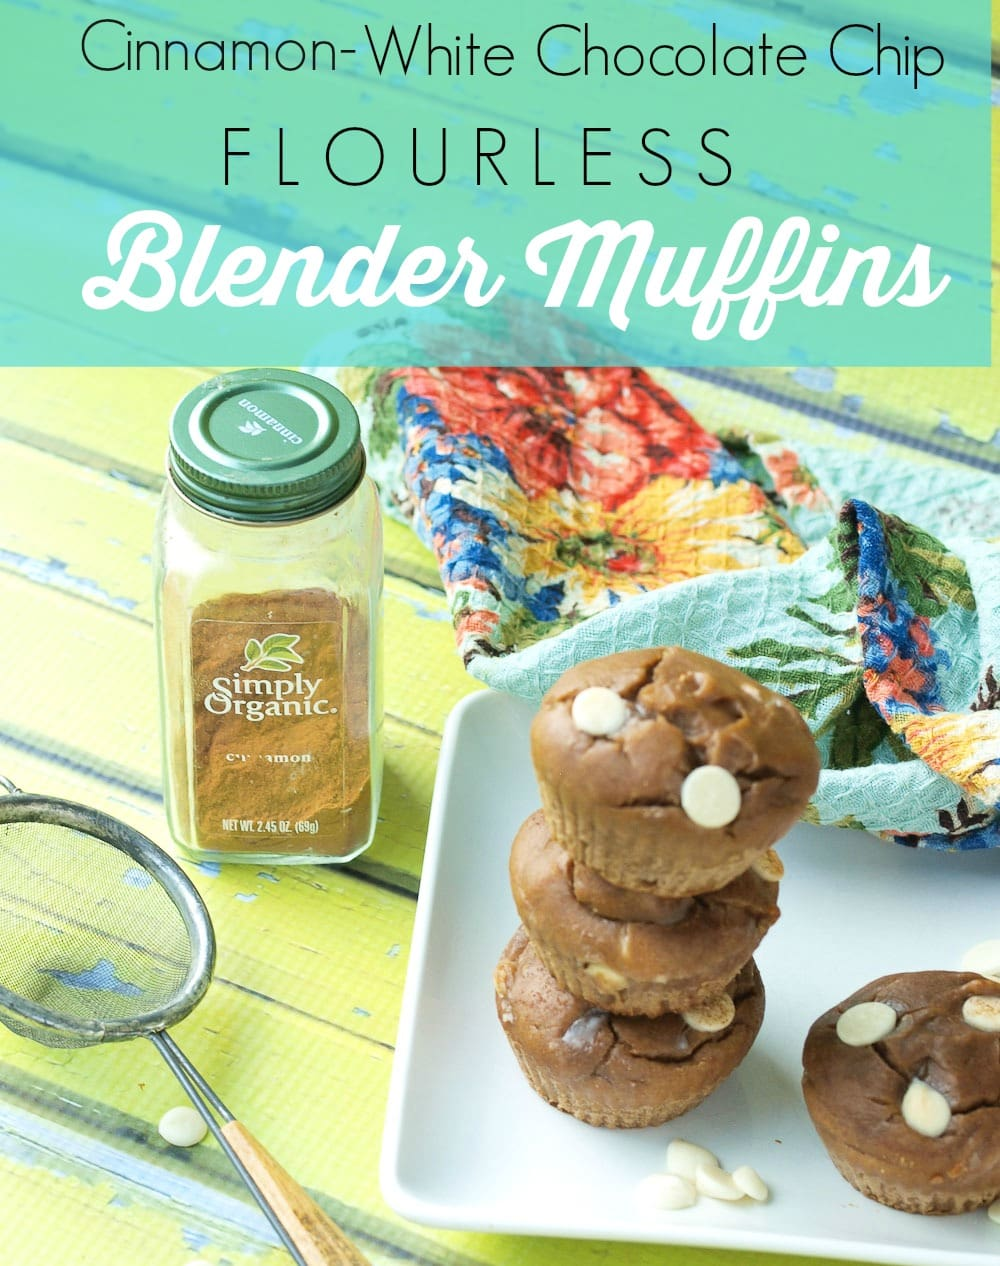 Flourless Cinnamon White Chocolate Chip Blender Muffin recipe.  You can prep these easy and healthy muffins in 5 minutes! Great portable breakfast option.